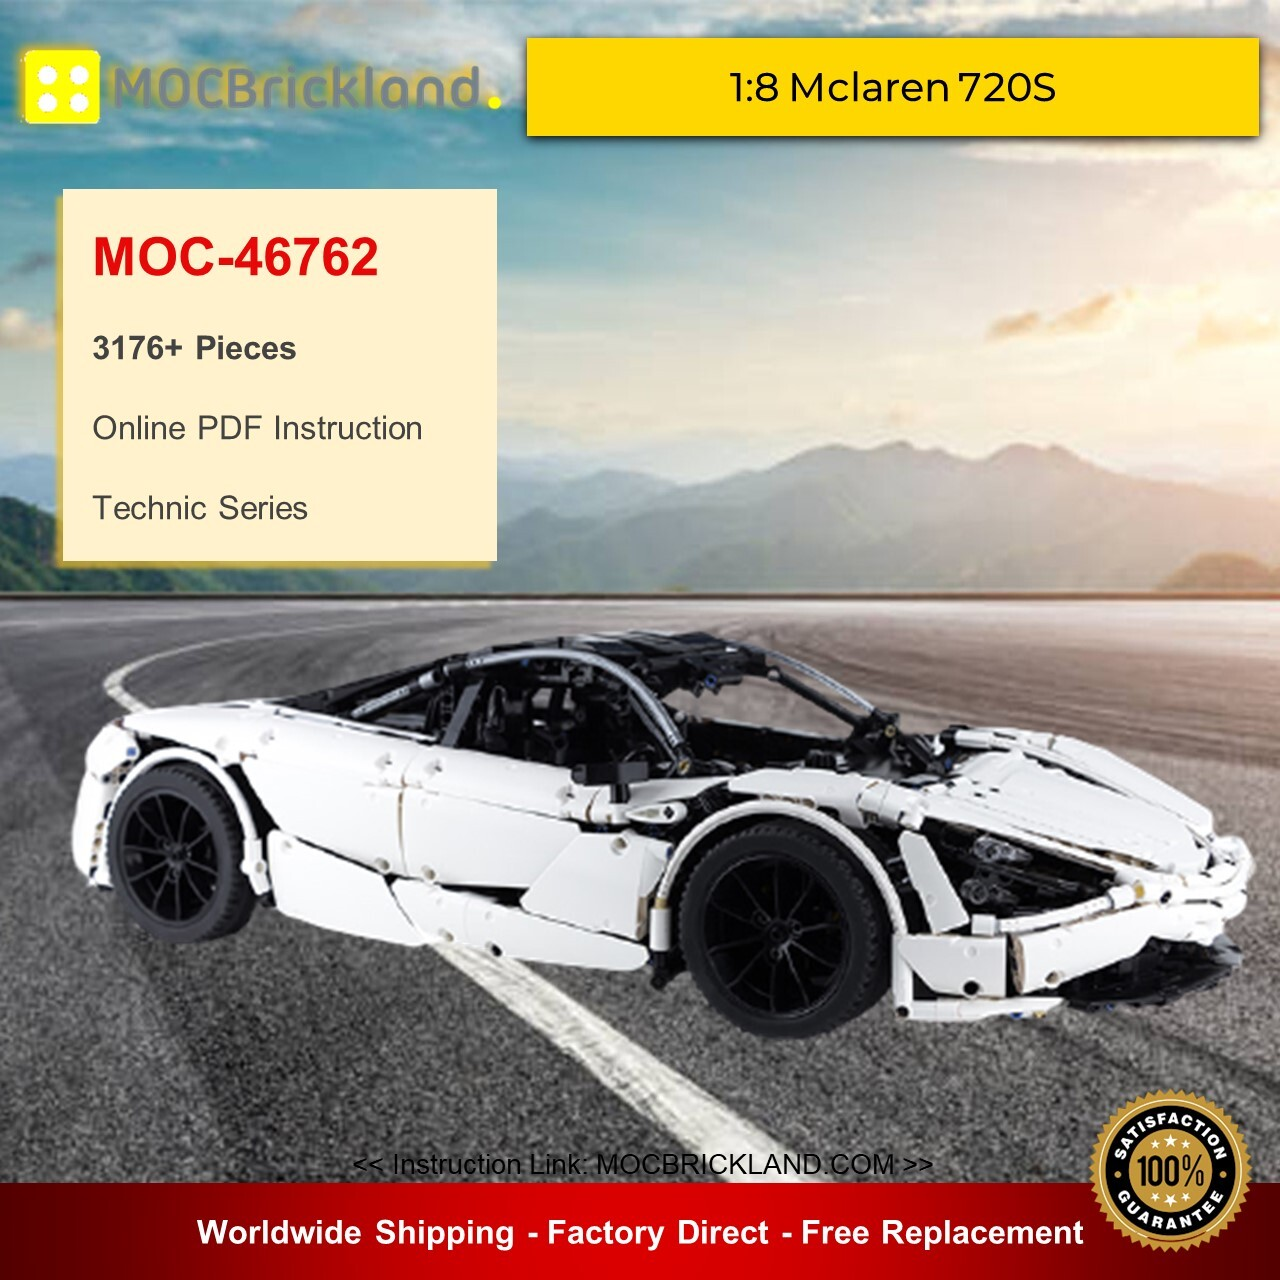 Technic moc-46762 1:8 mclaren 720s by charbel mocbrickland